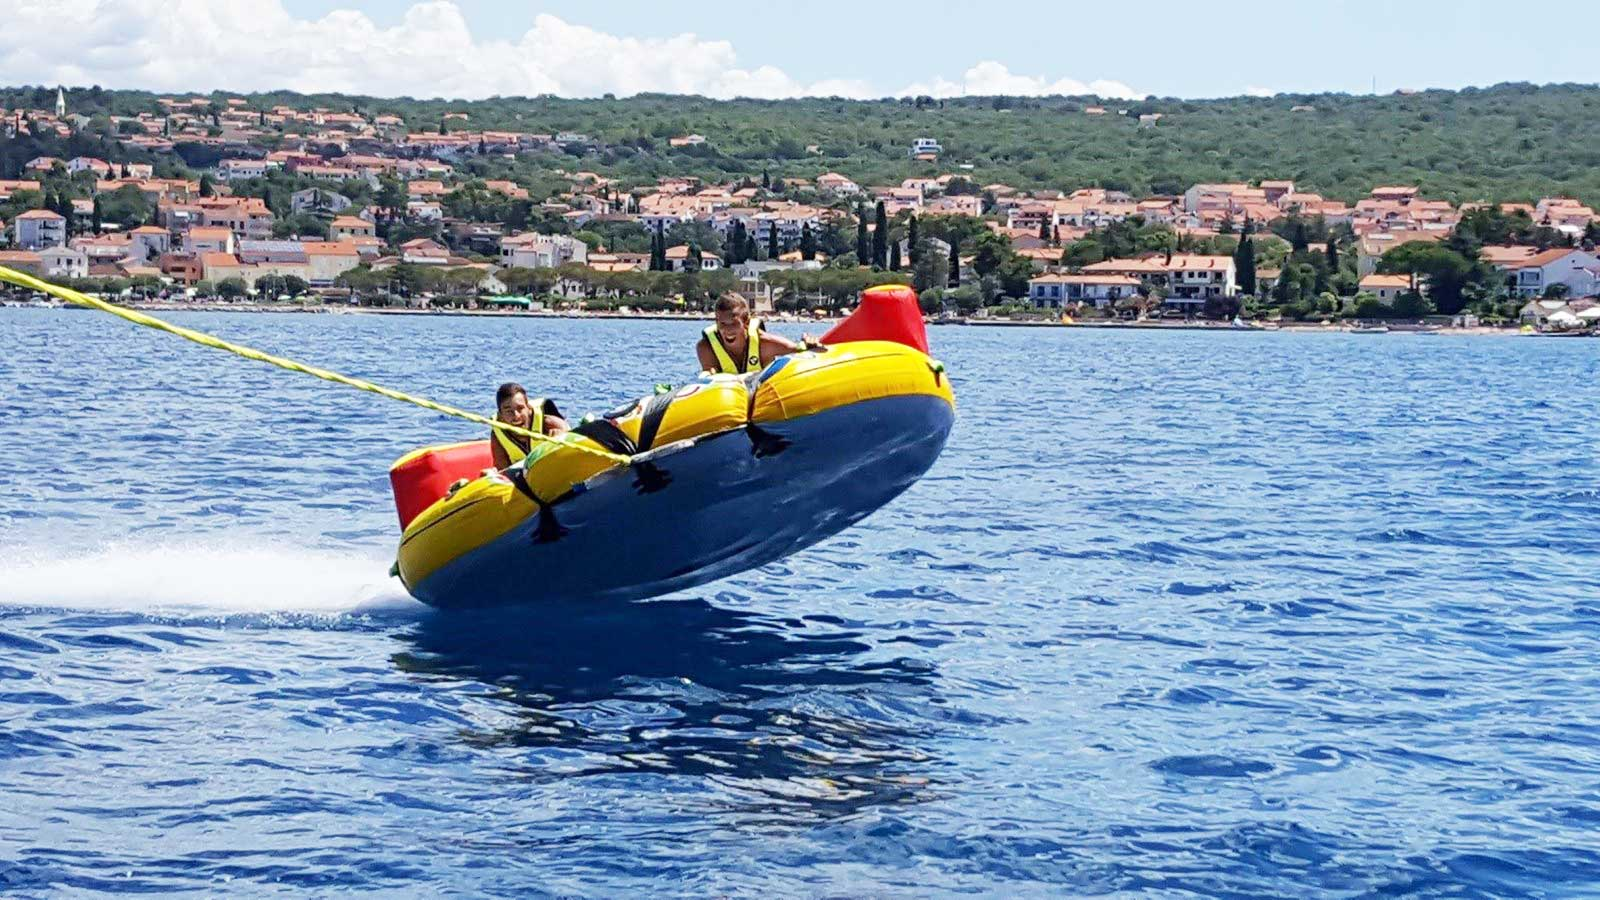 Water sports - tube i sofa | Oto nautika - Hrvatska